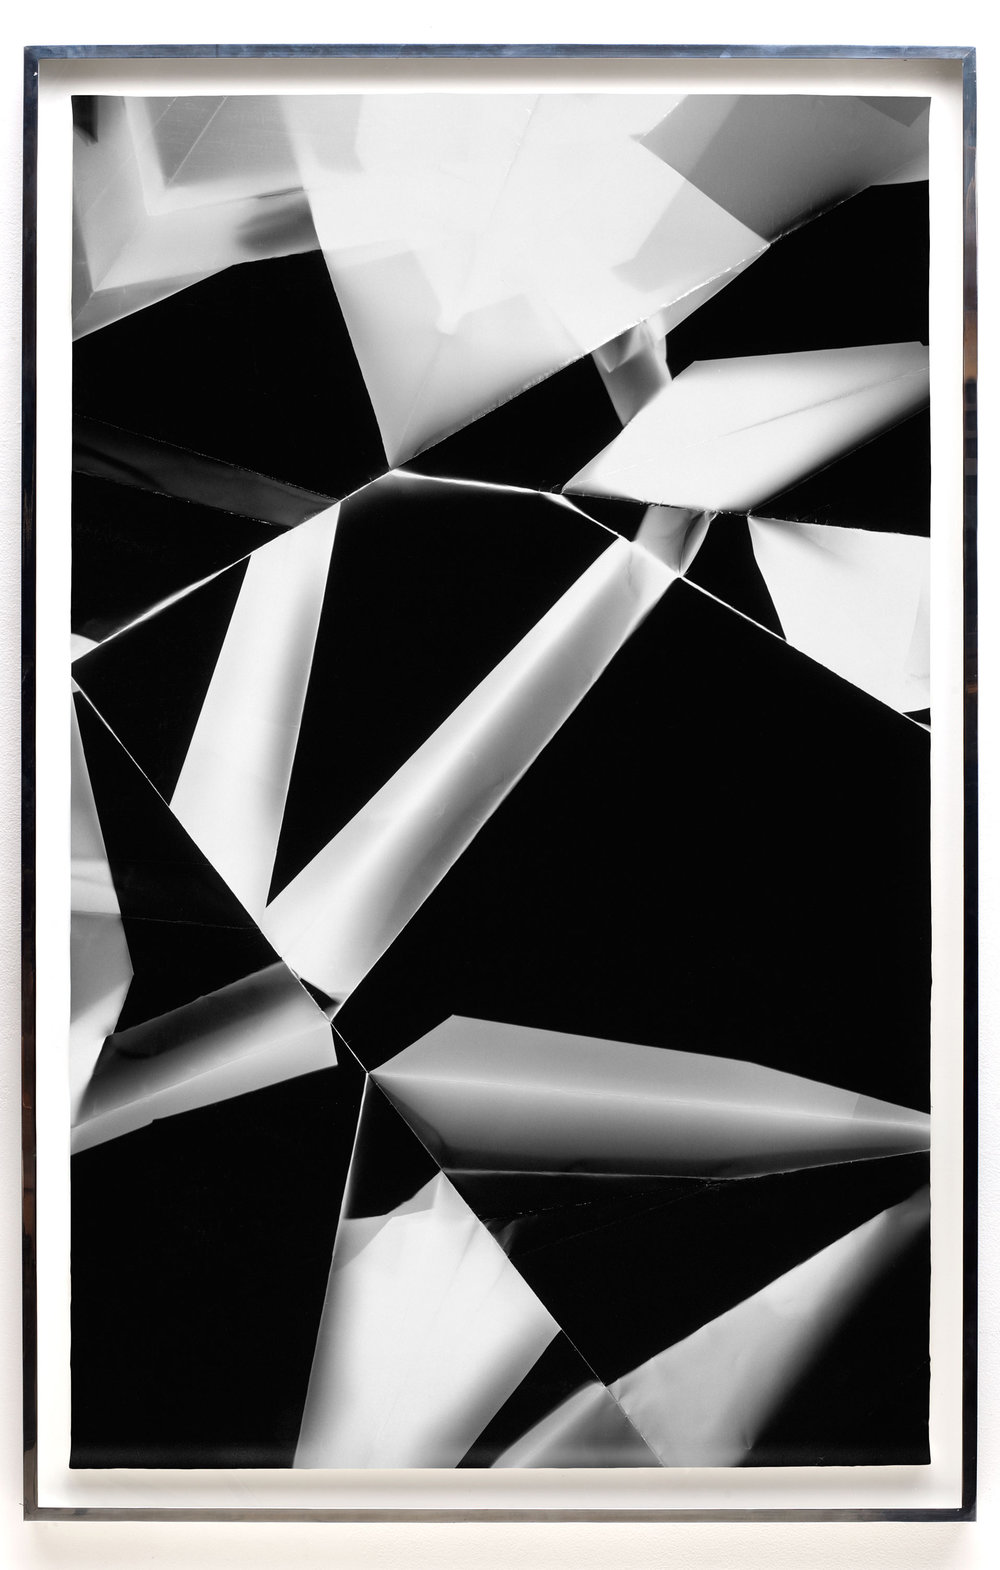 Fold (60º/120º/180º/240º/300º/360º directional light sources), June 5, 2008, Annandale-On-Hudson, New York, Foma Multigrade Fiber   2009  Black and white fiber based photographic paper  72 x 46 3/4 inches   Black and White Directional Folds, 2006–2014    Legibility on Color Backgrounds, 2009